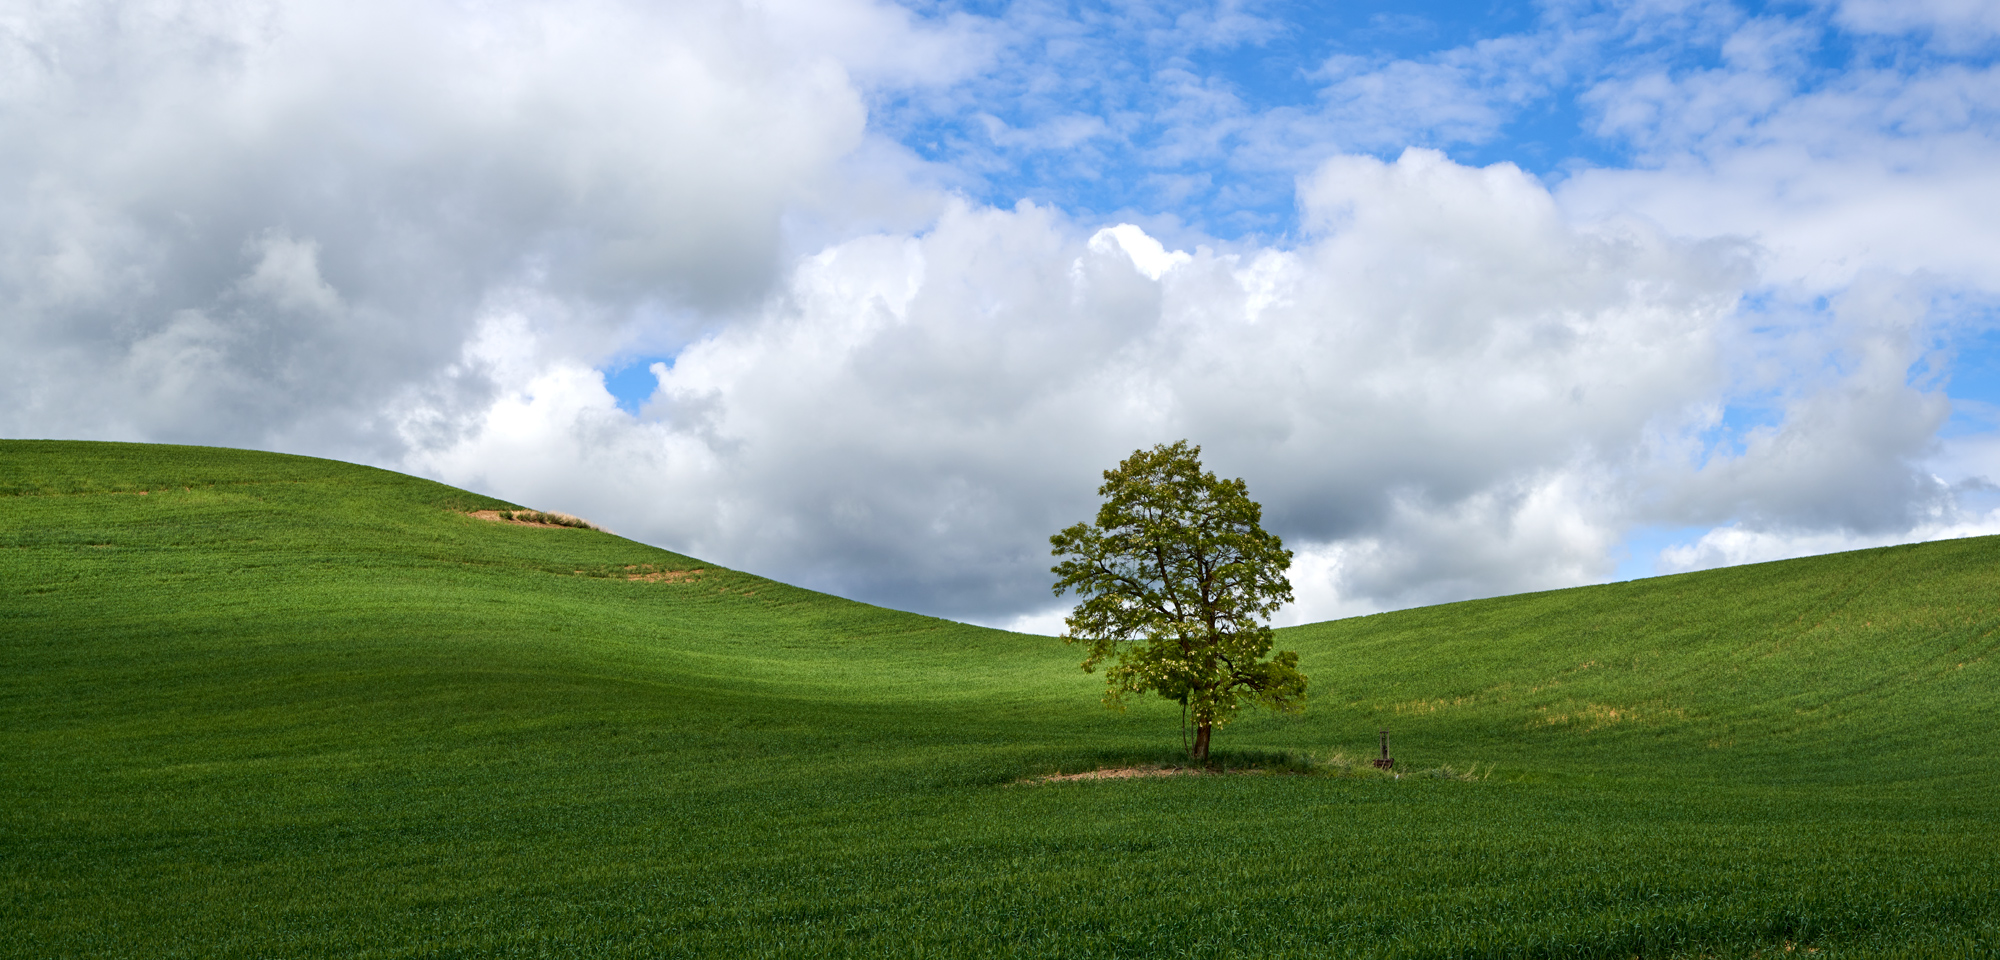 Another lone tree. The lone tree is symbolic of the Palouse.